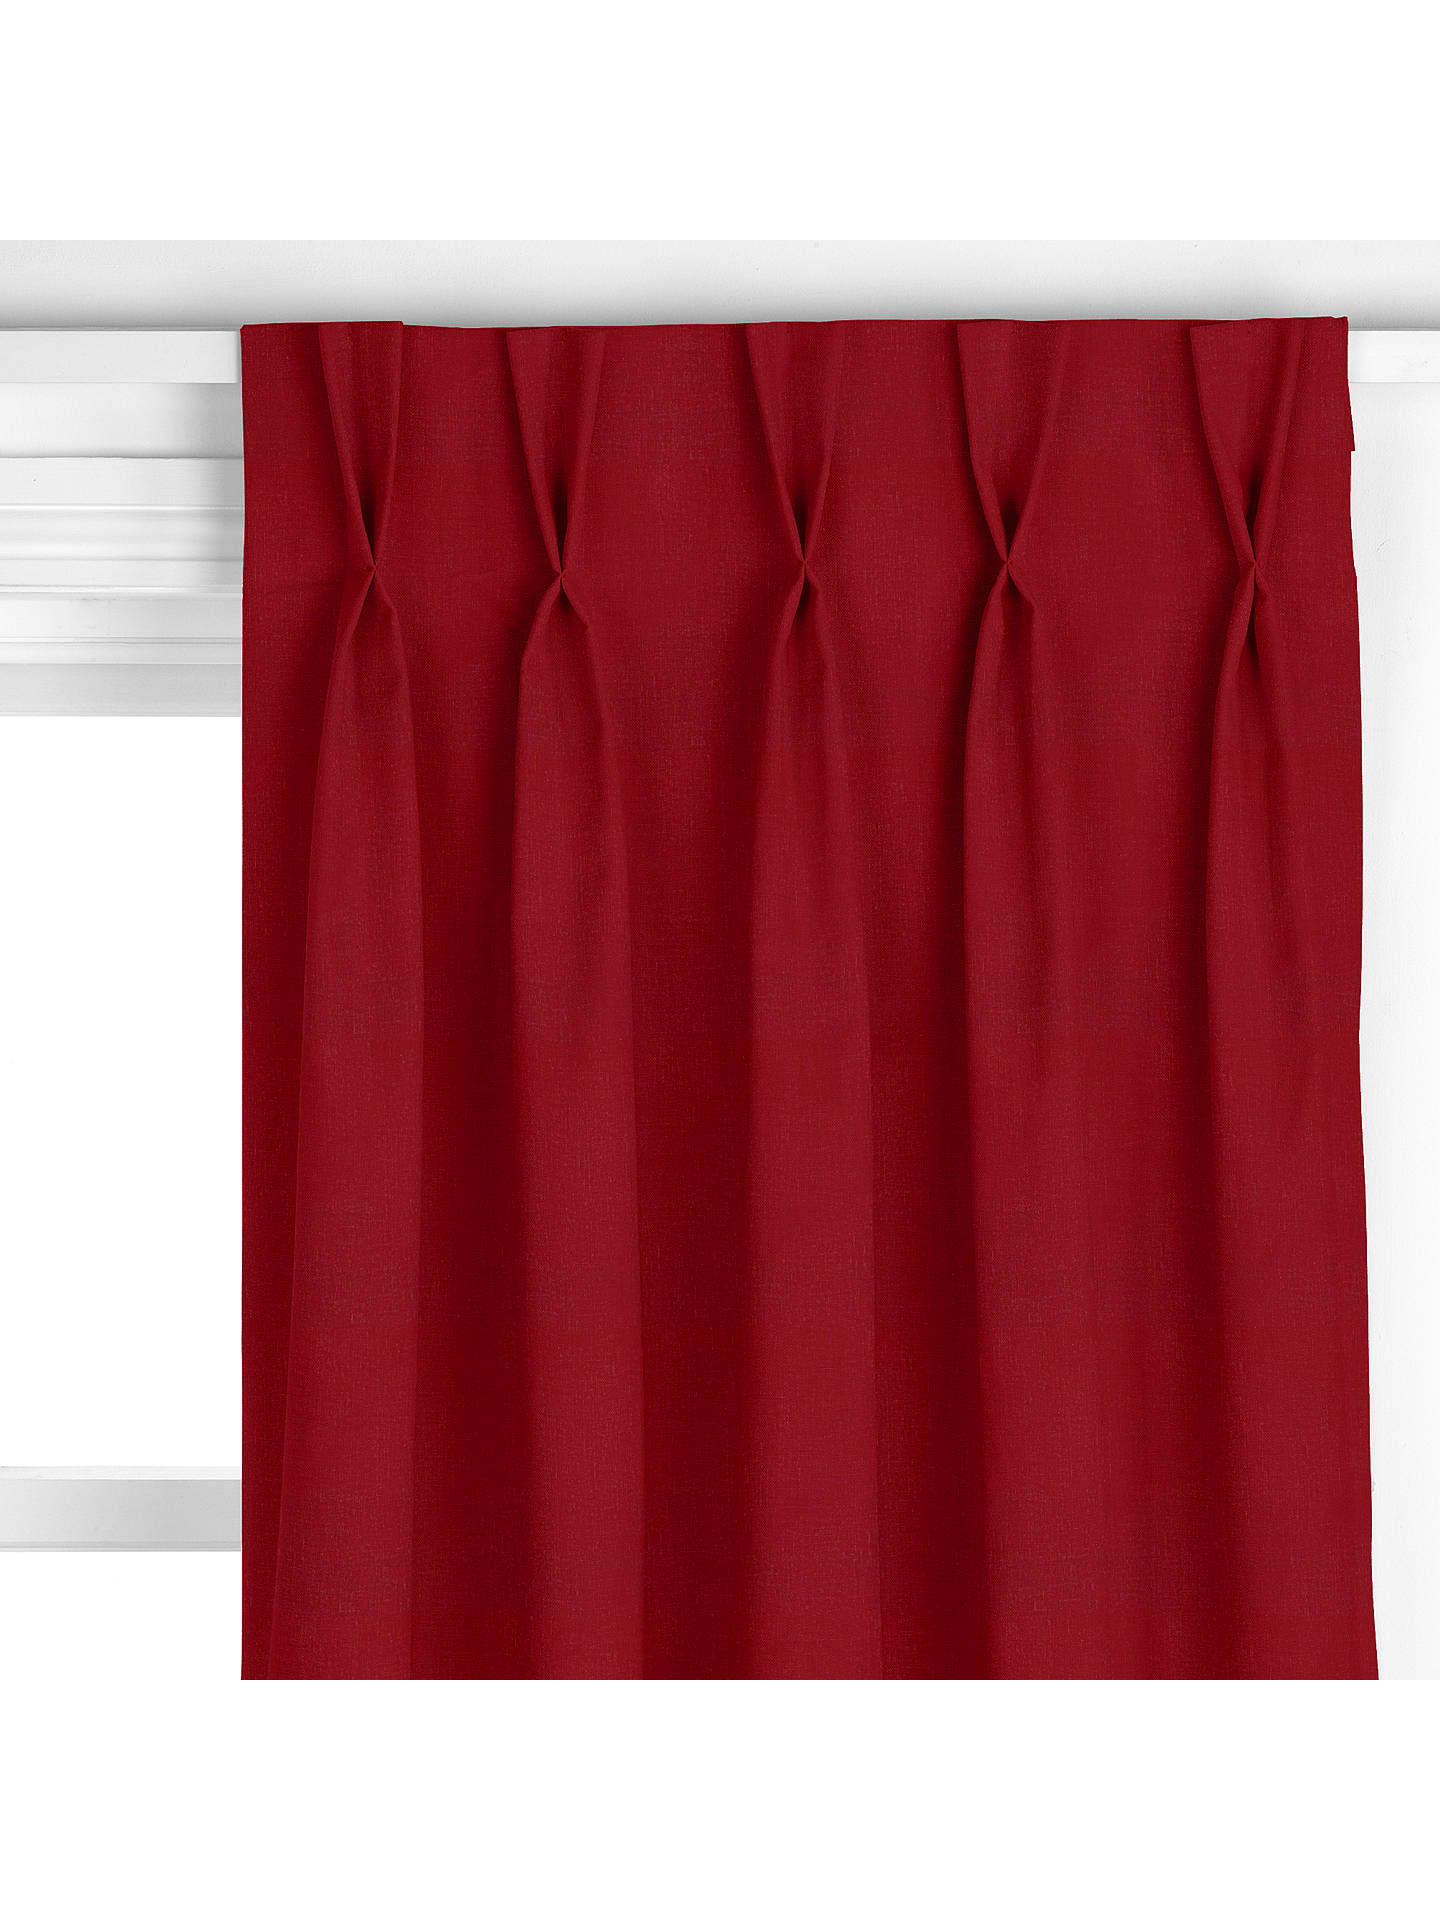 BuyJohn Lewis & Partners Luna Curtain, Claret Online at johnlewis.com